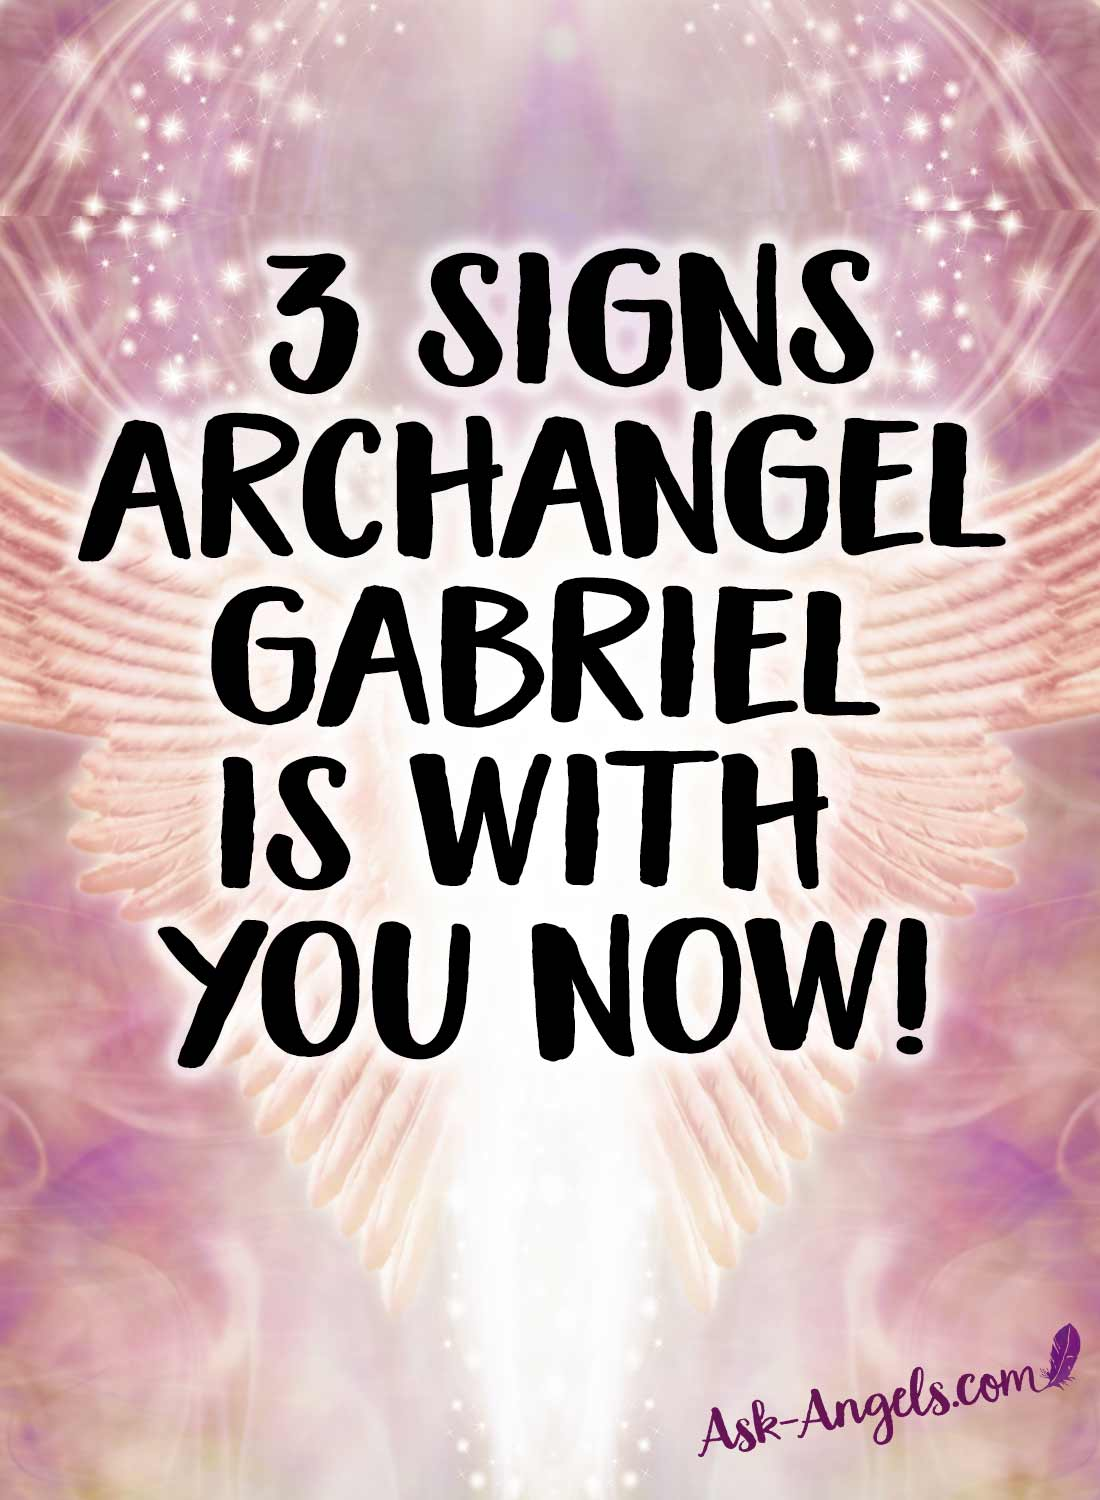 Learn the top 3 signs Gabriel is with you now!